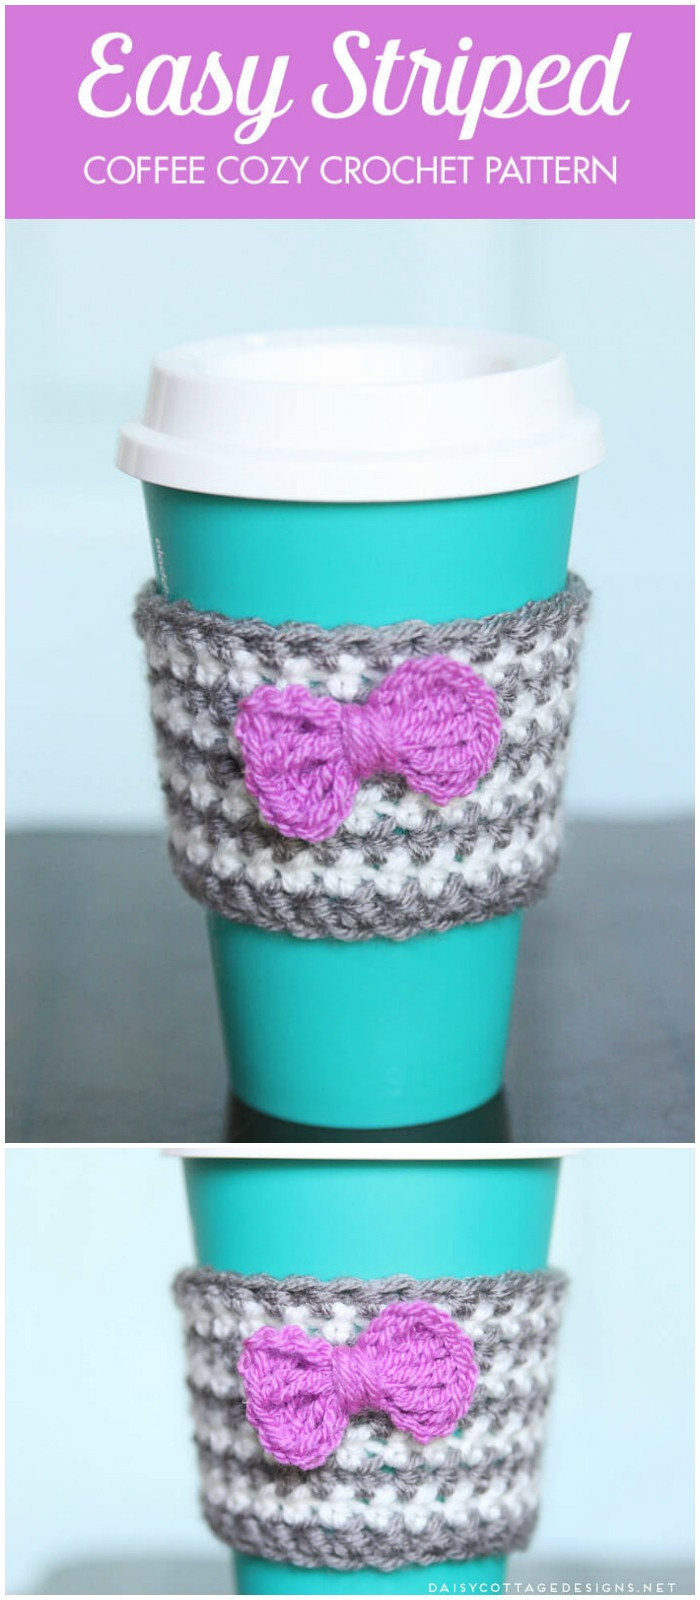 Crochet Coffee Cup Cozy Fresh 8 Crochet Cozy Patterns Free Crochet Patterns • Diy Home Of Crochet Coffee Cup Cozy Awesome Textured Coffee Mug Cozy Crochet Pattern